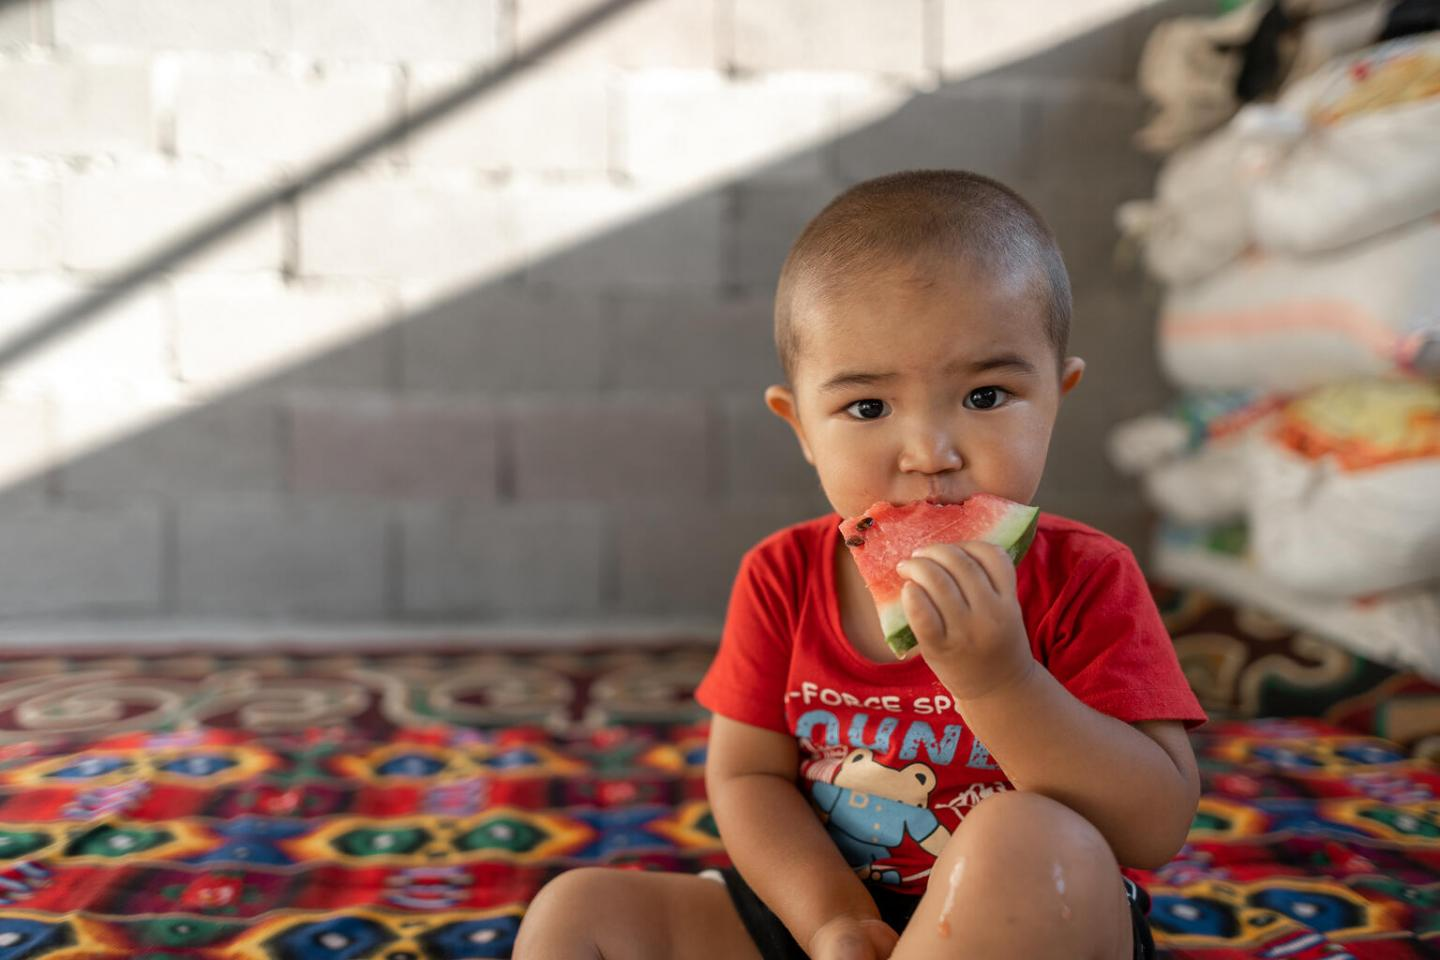 Only one in three children receive adequate food: UNICEF